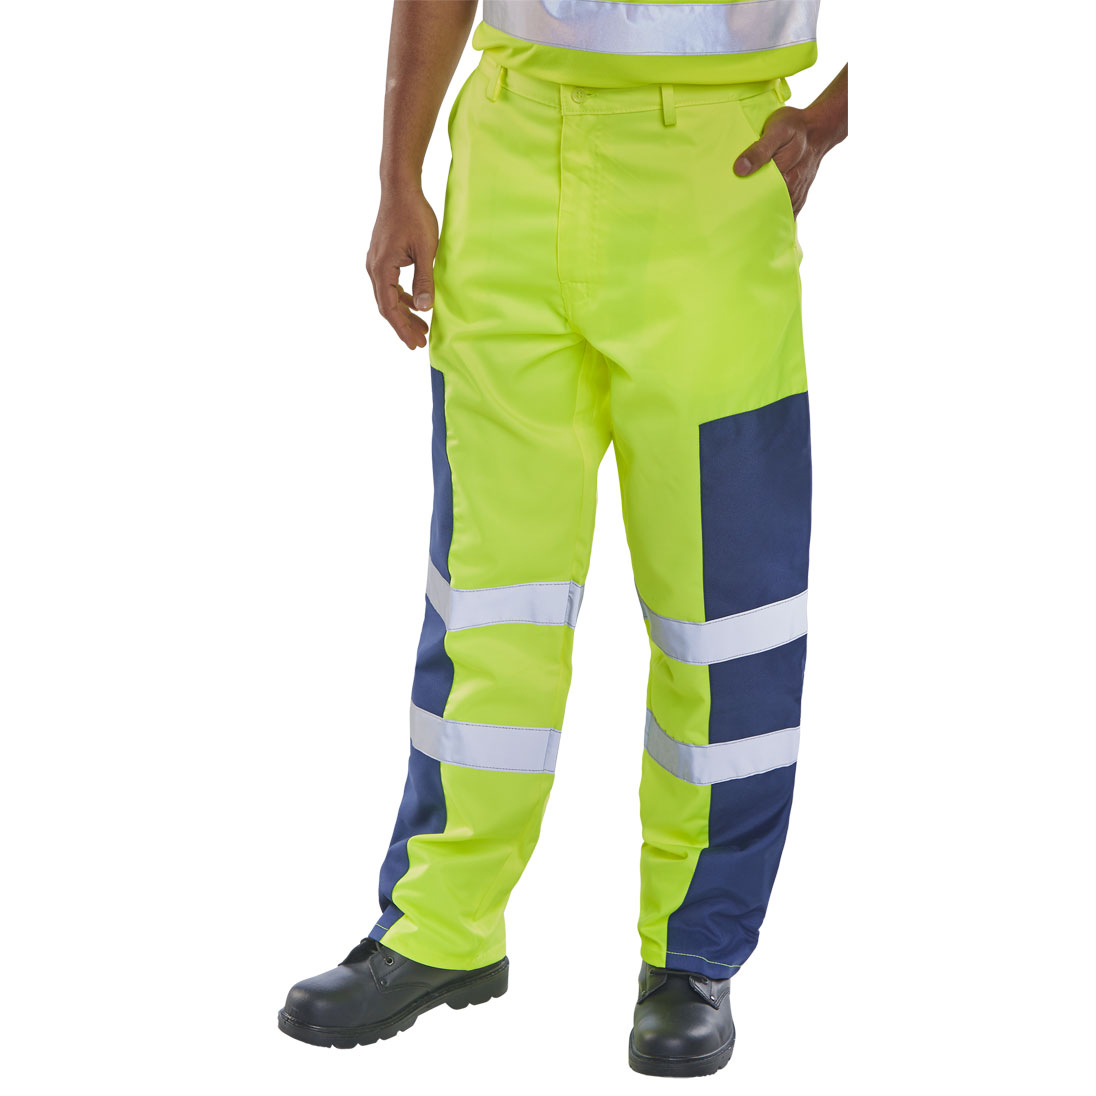 Click Workwear Trousers Hi-Vis Nylon Patch Yellow/Navy Blue 40 Ref PCTSYNNP40 *Up to 3 Day Leadtime*